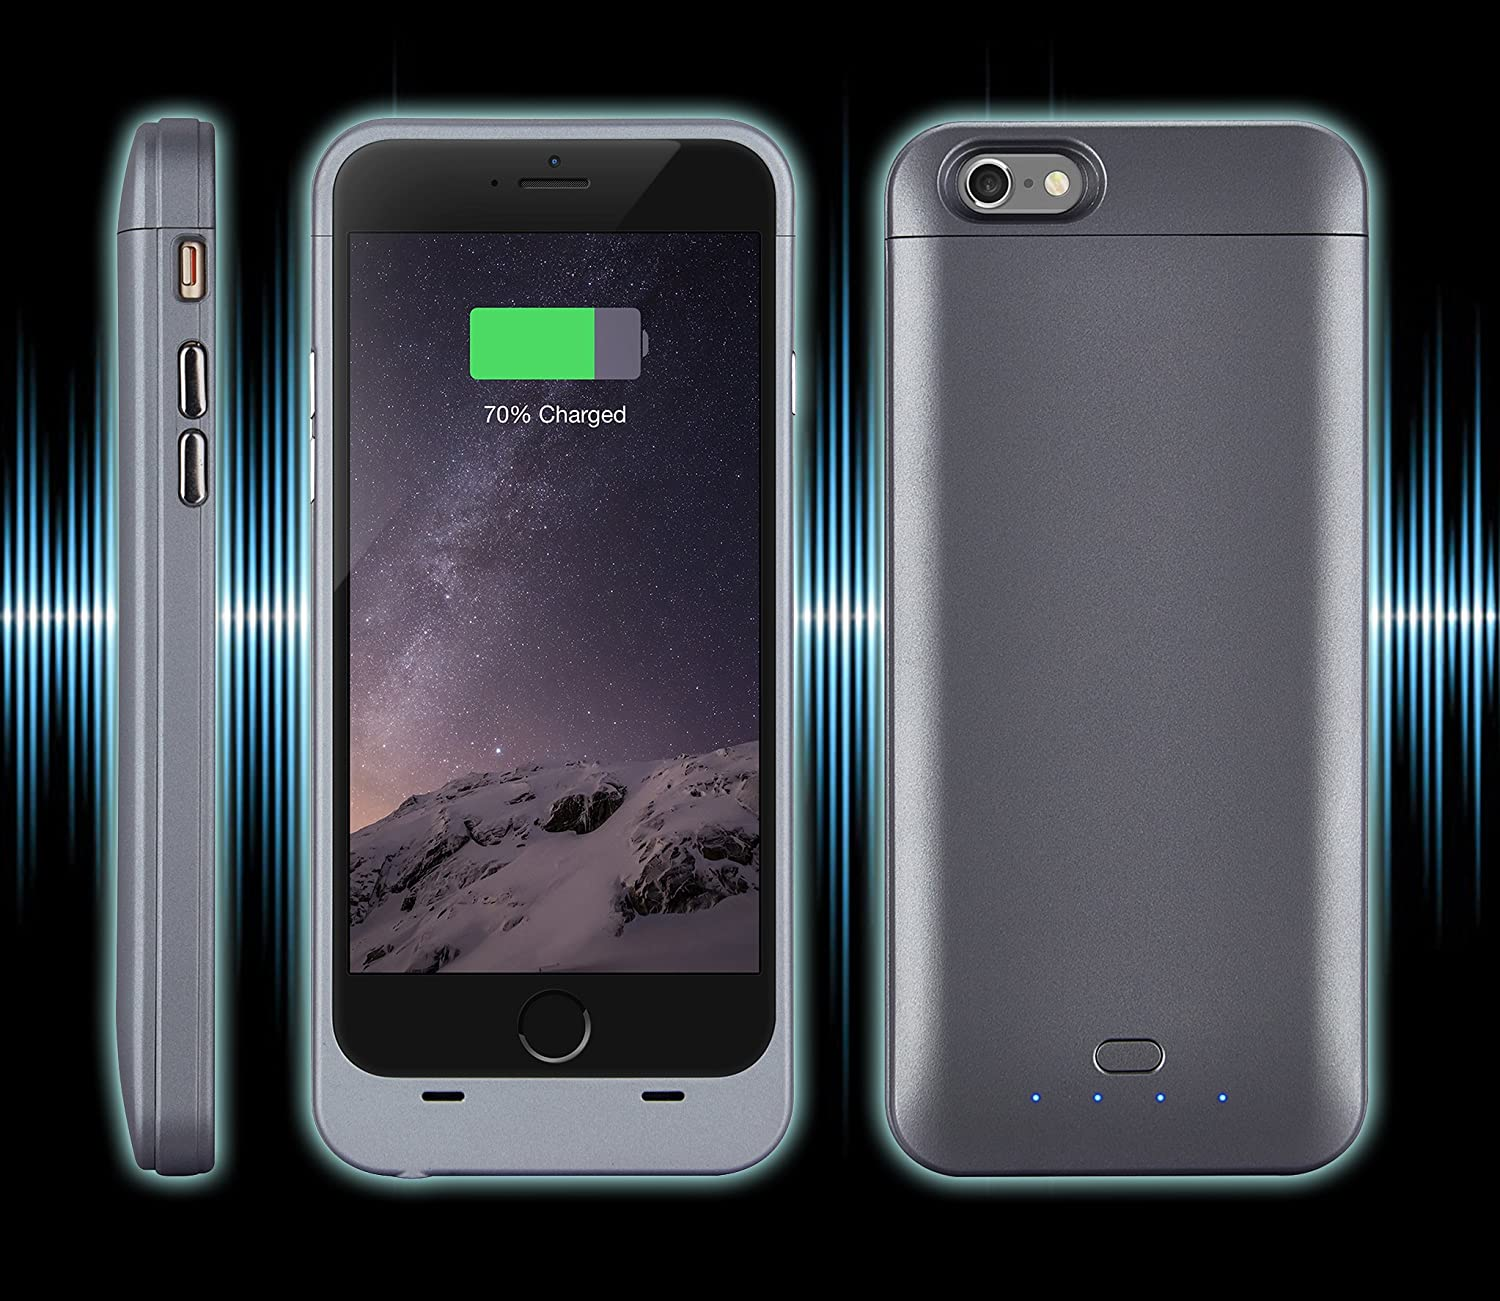 4.7 inch iPhone 6 Battery Case, iPhone 6 Battery Charger Case - Xcomm MFI Apple Certified iPhone 6 External Protective Rechargeable Portable Battery Charger Case (Gray)